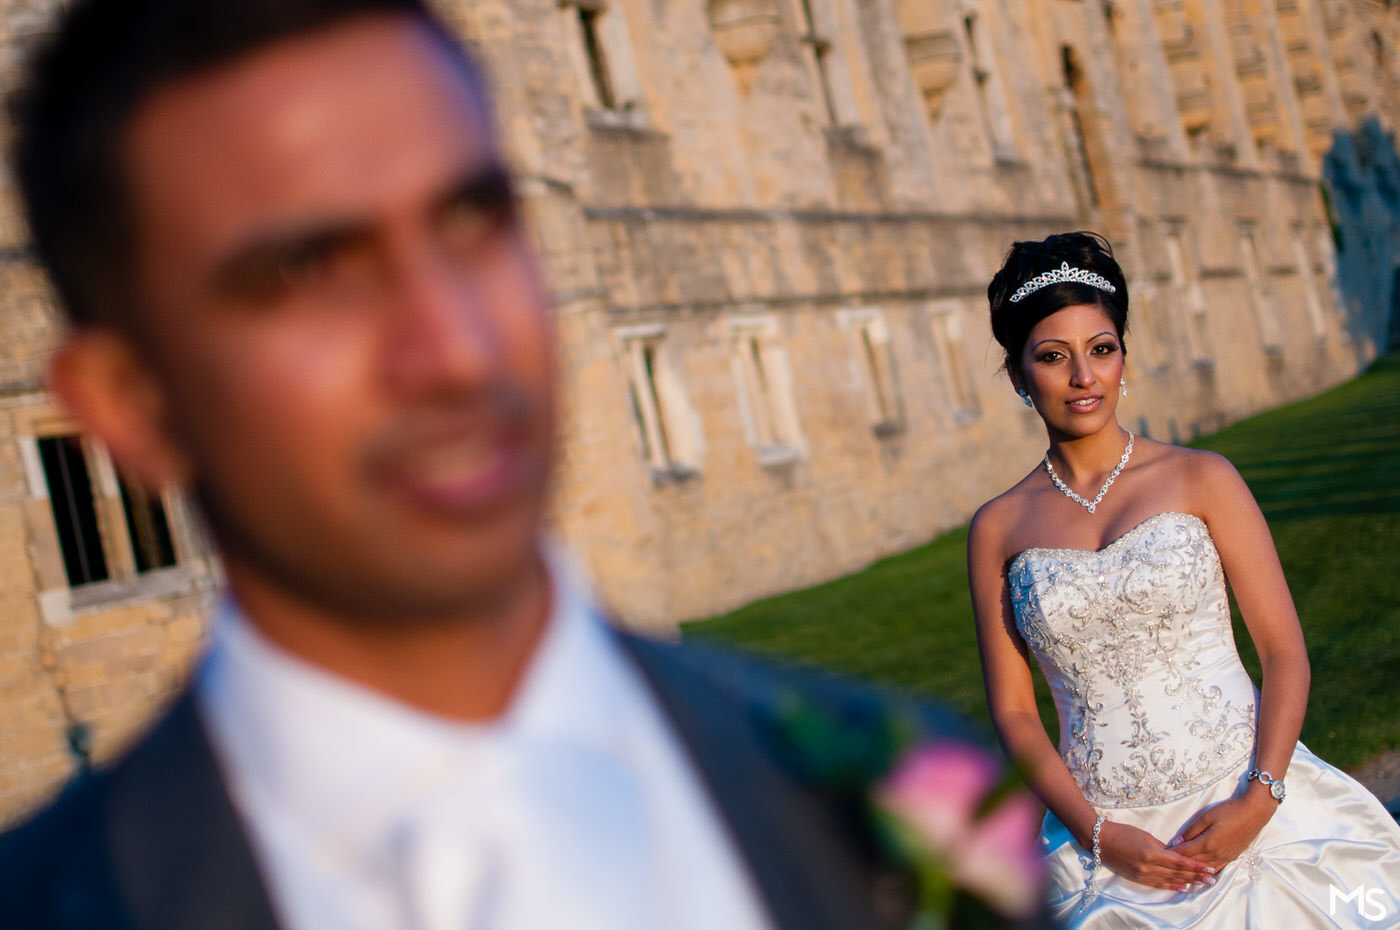 Bolsover-Castle-Indian-wedding - 40_DSC_5966.jpg